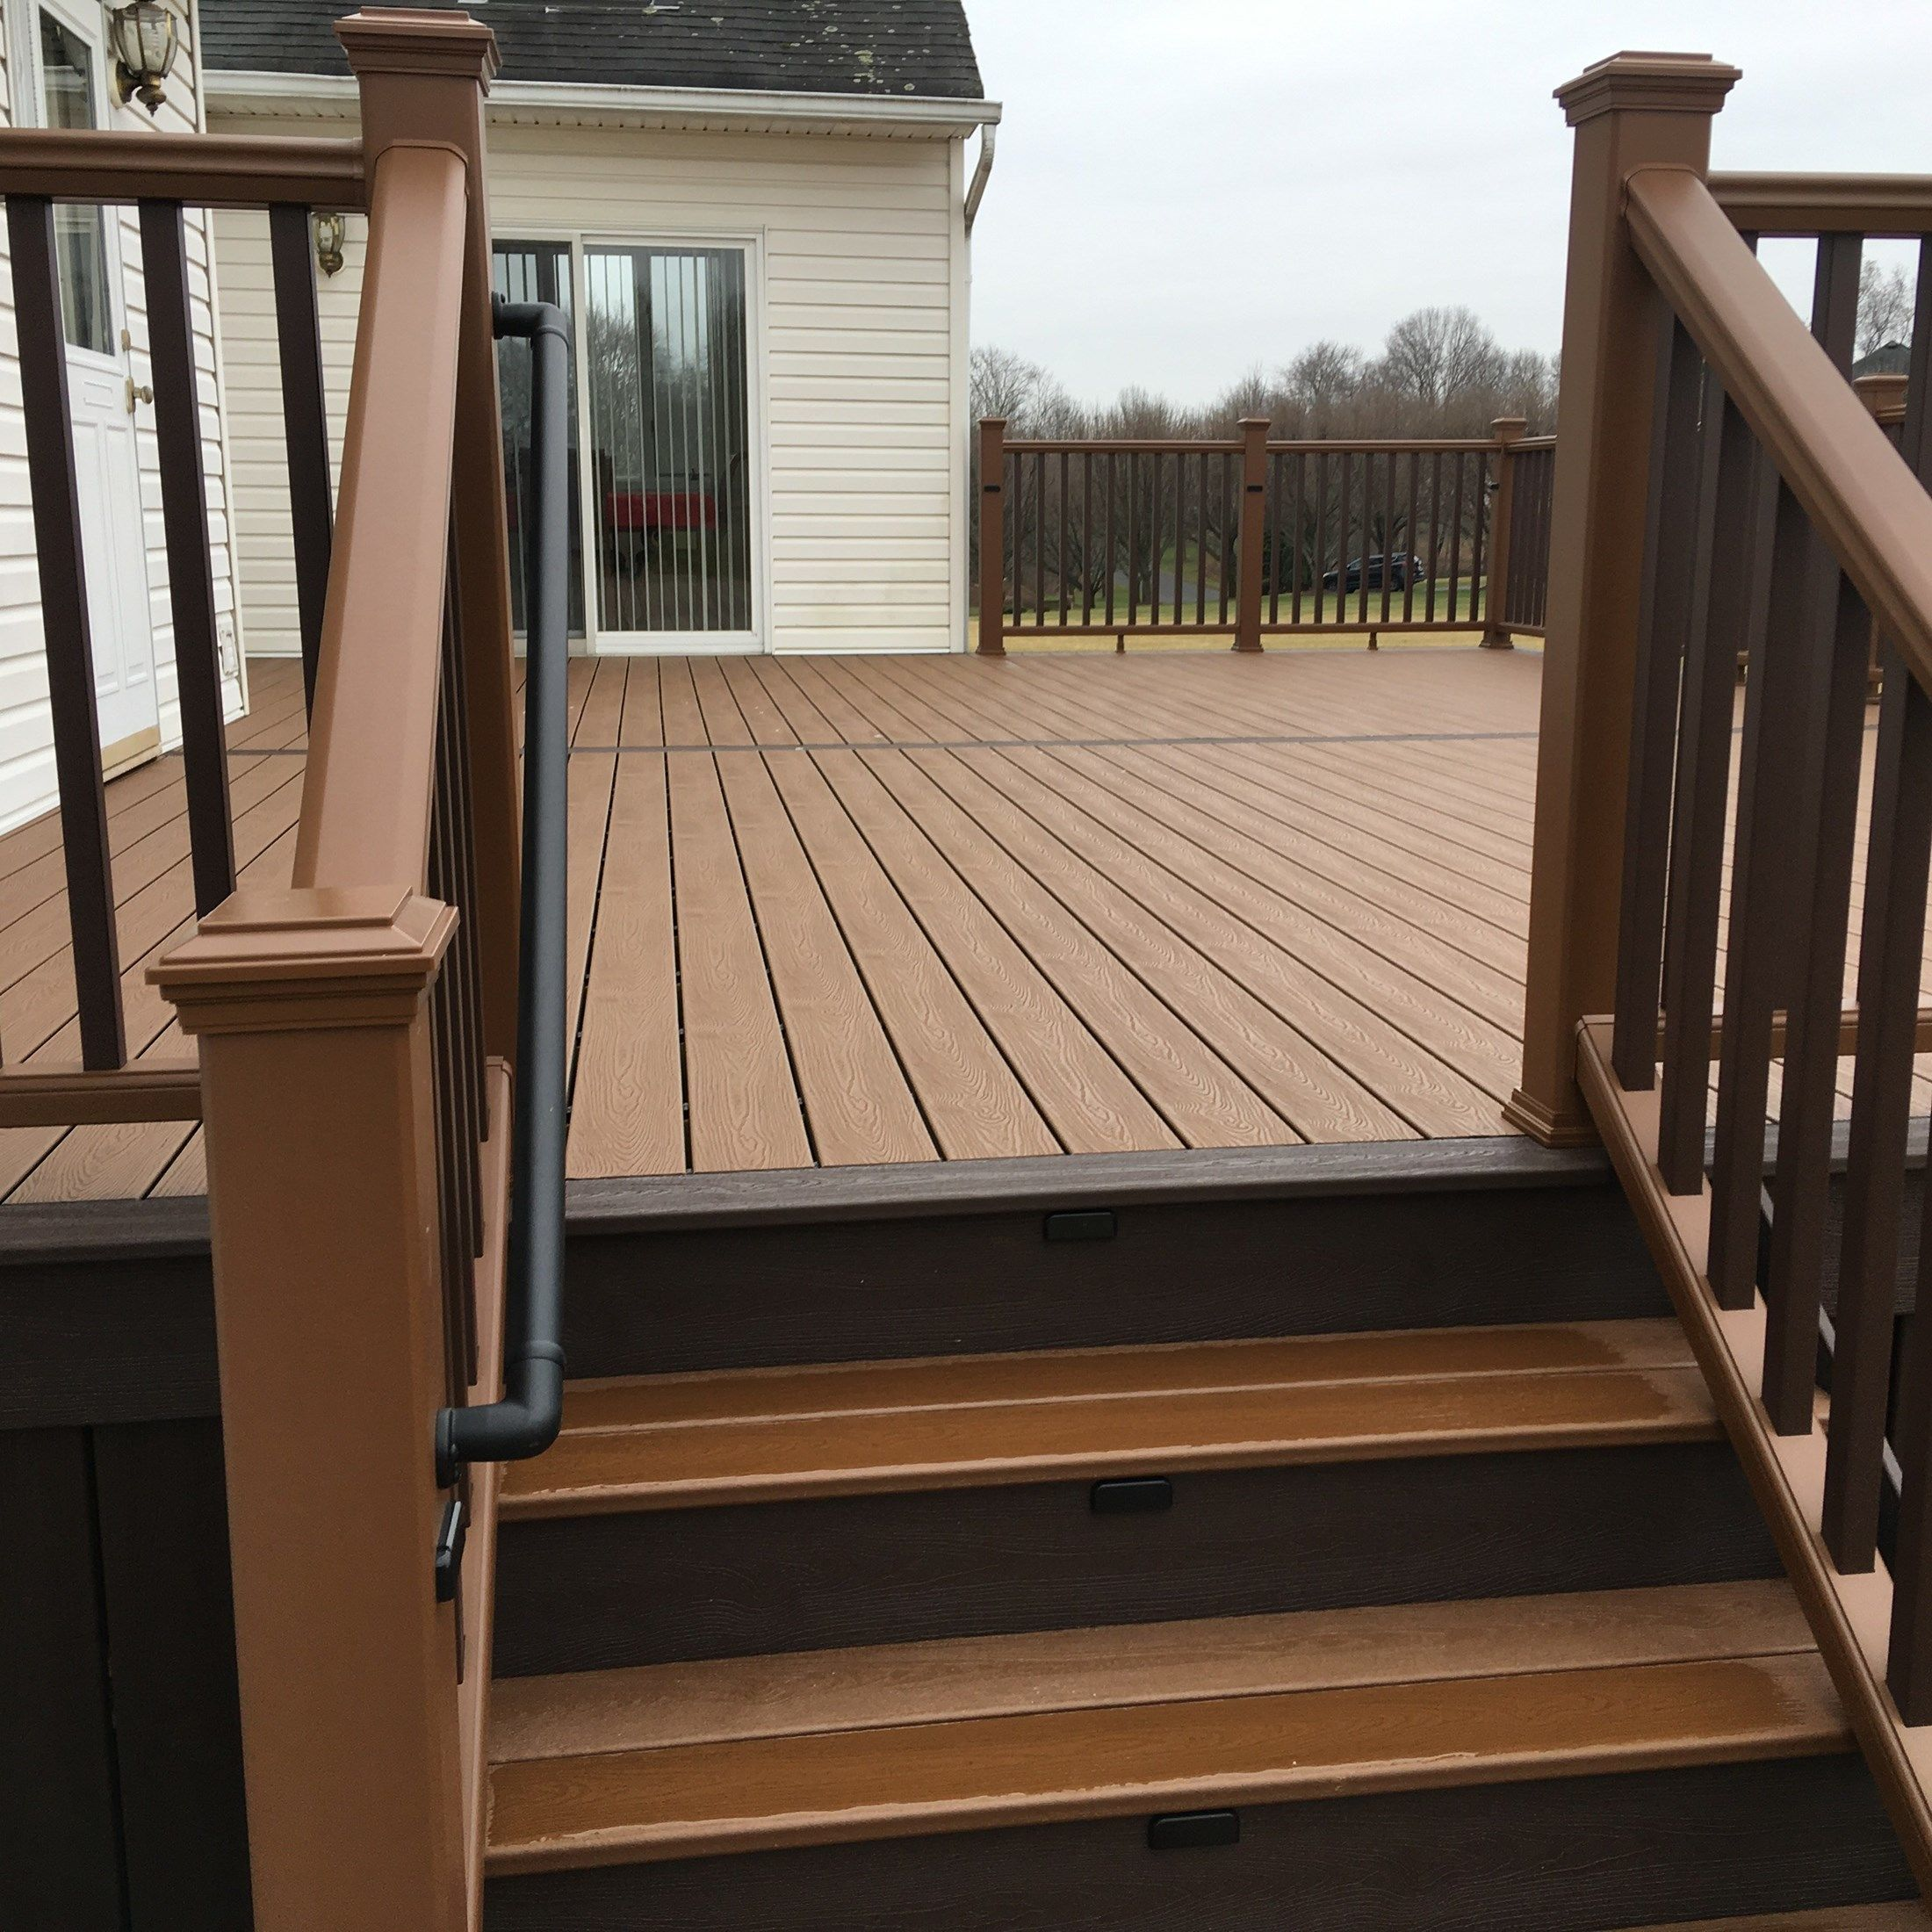 Custom deck in Manalapan NJ - Picture 6716